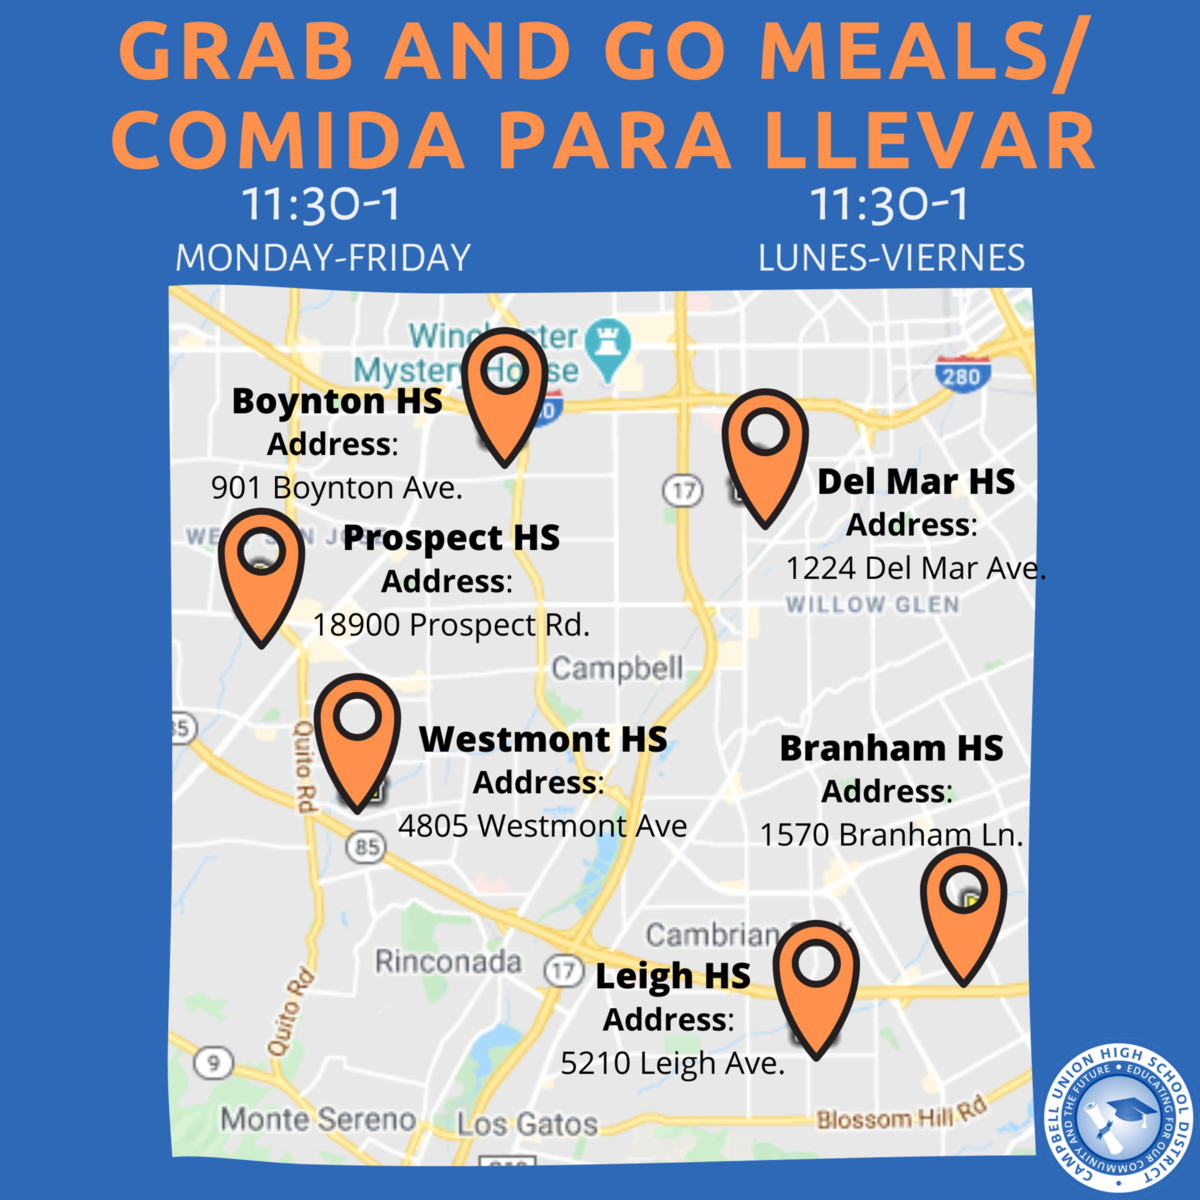 flyer promoting free meals to students during coronavirus, monday to friday